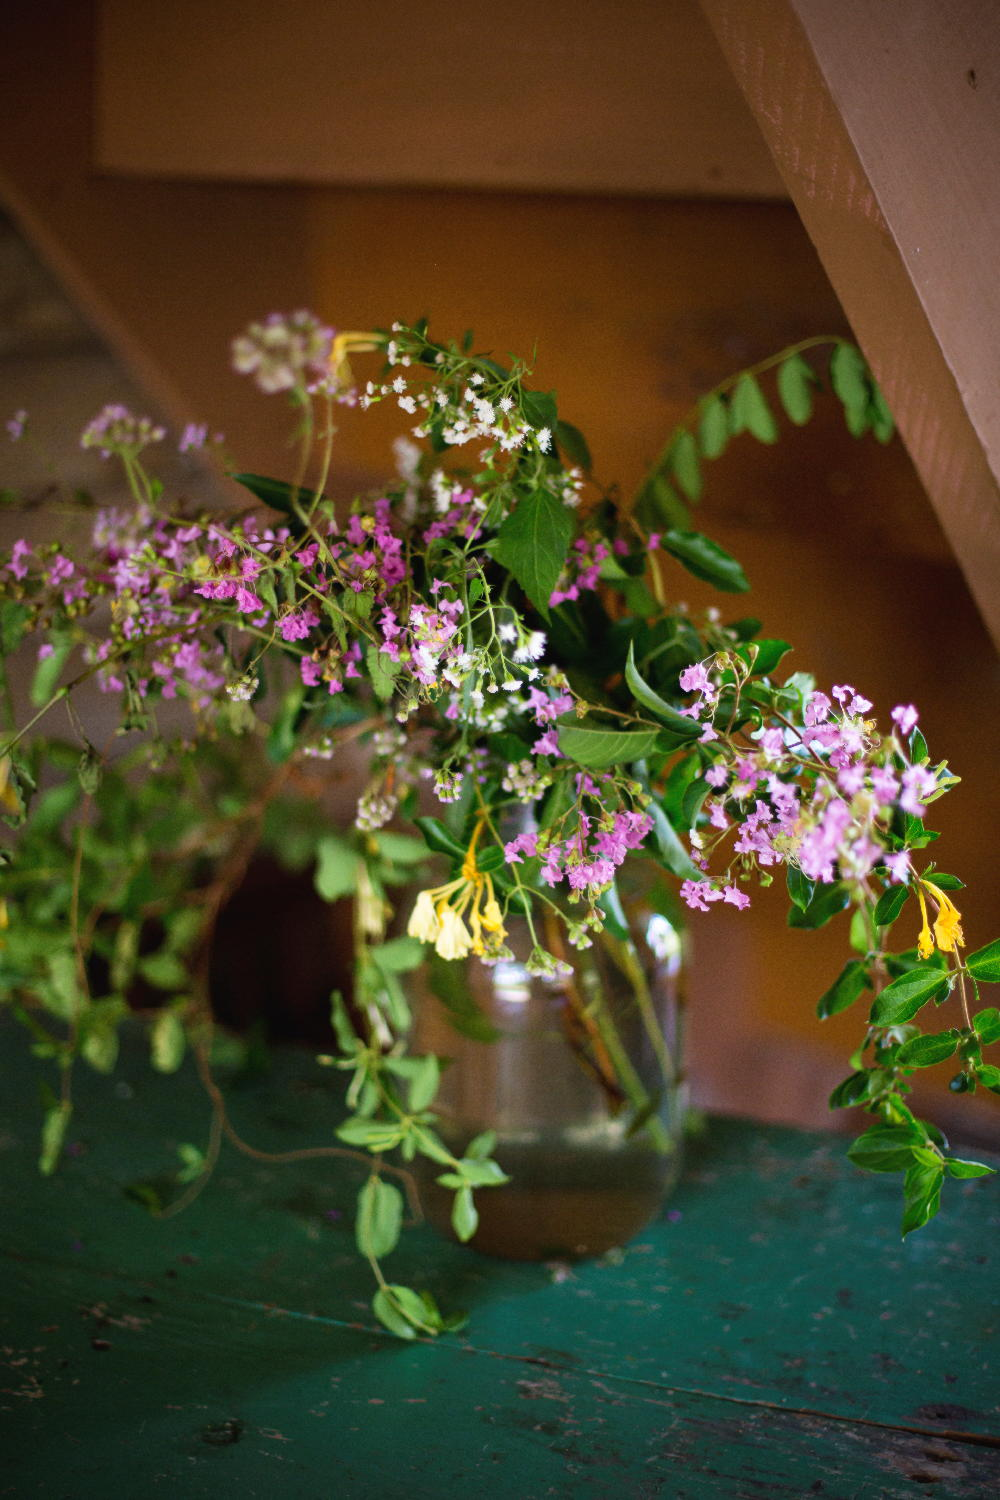 wildflowers in a jar.jpg